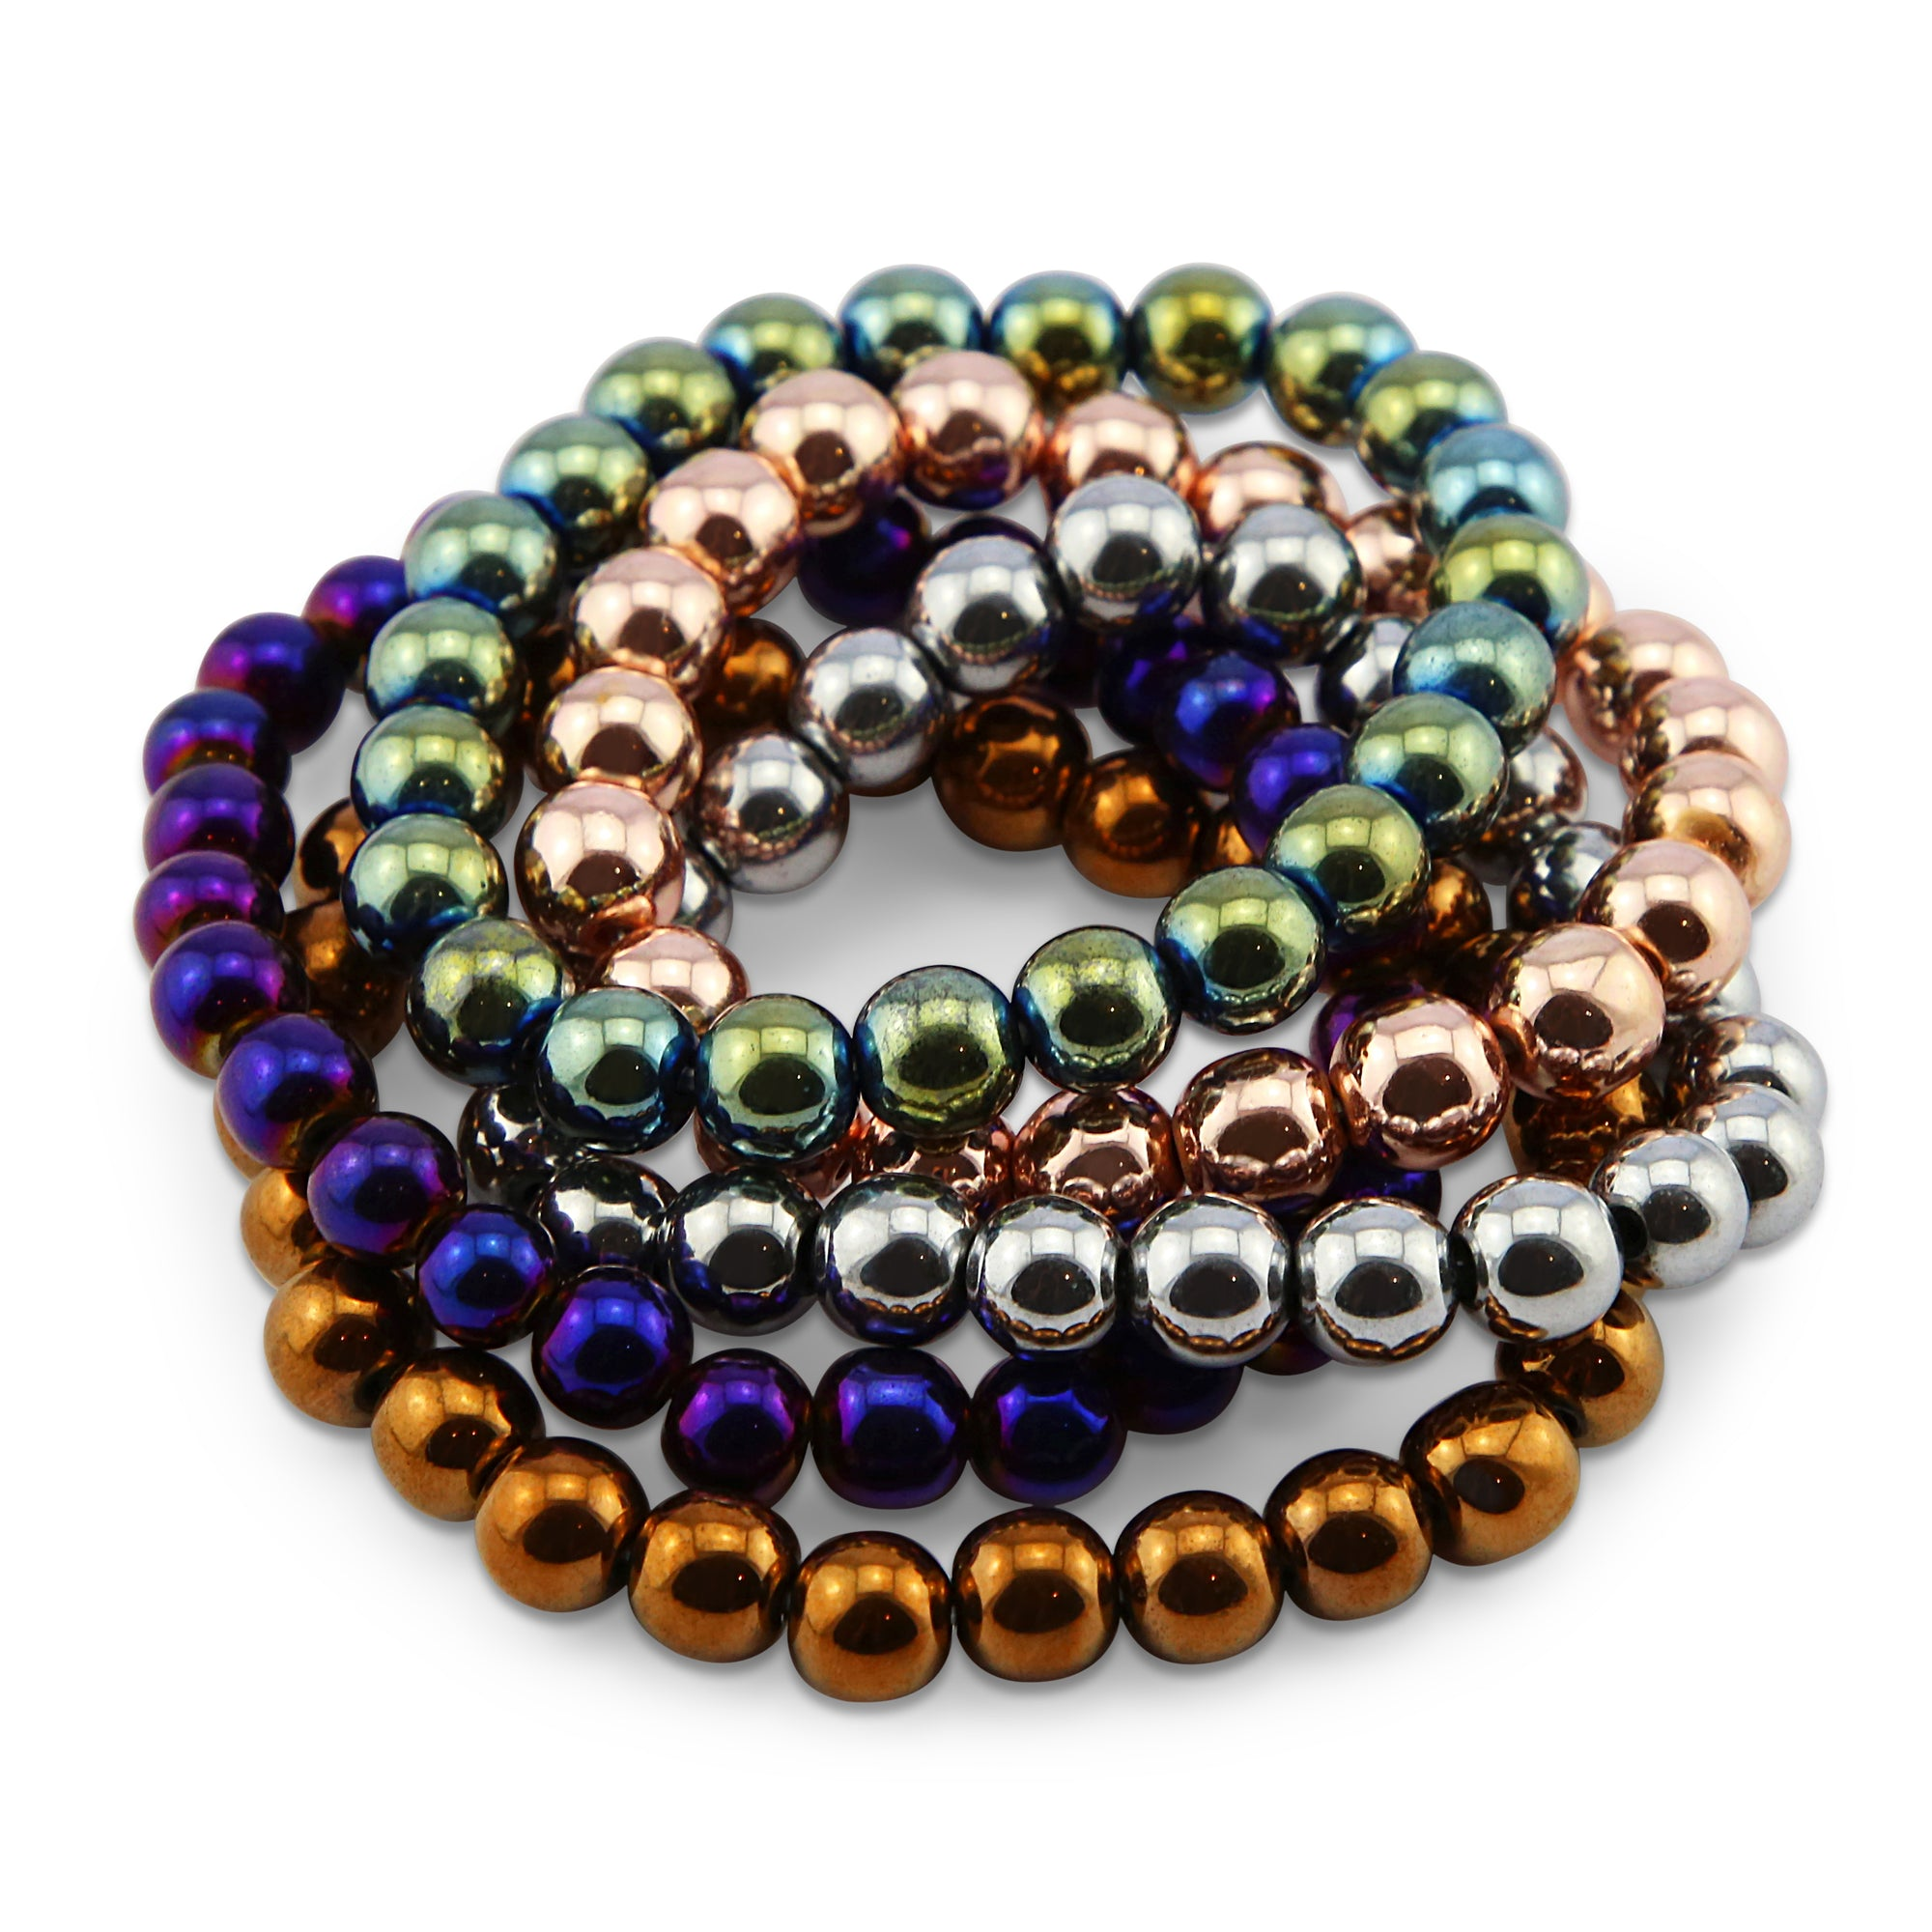 Hematite Metallic Stacker Bracelets - 8mm Beads (7-011)